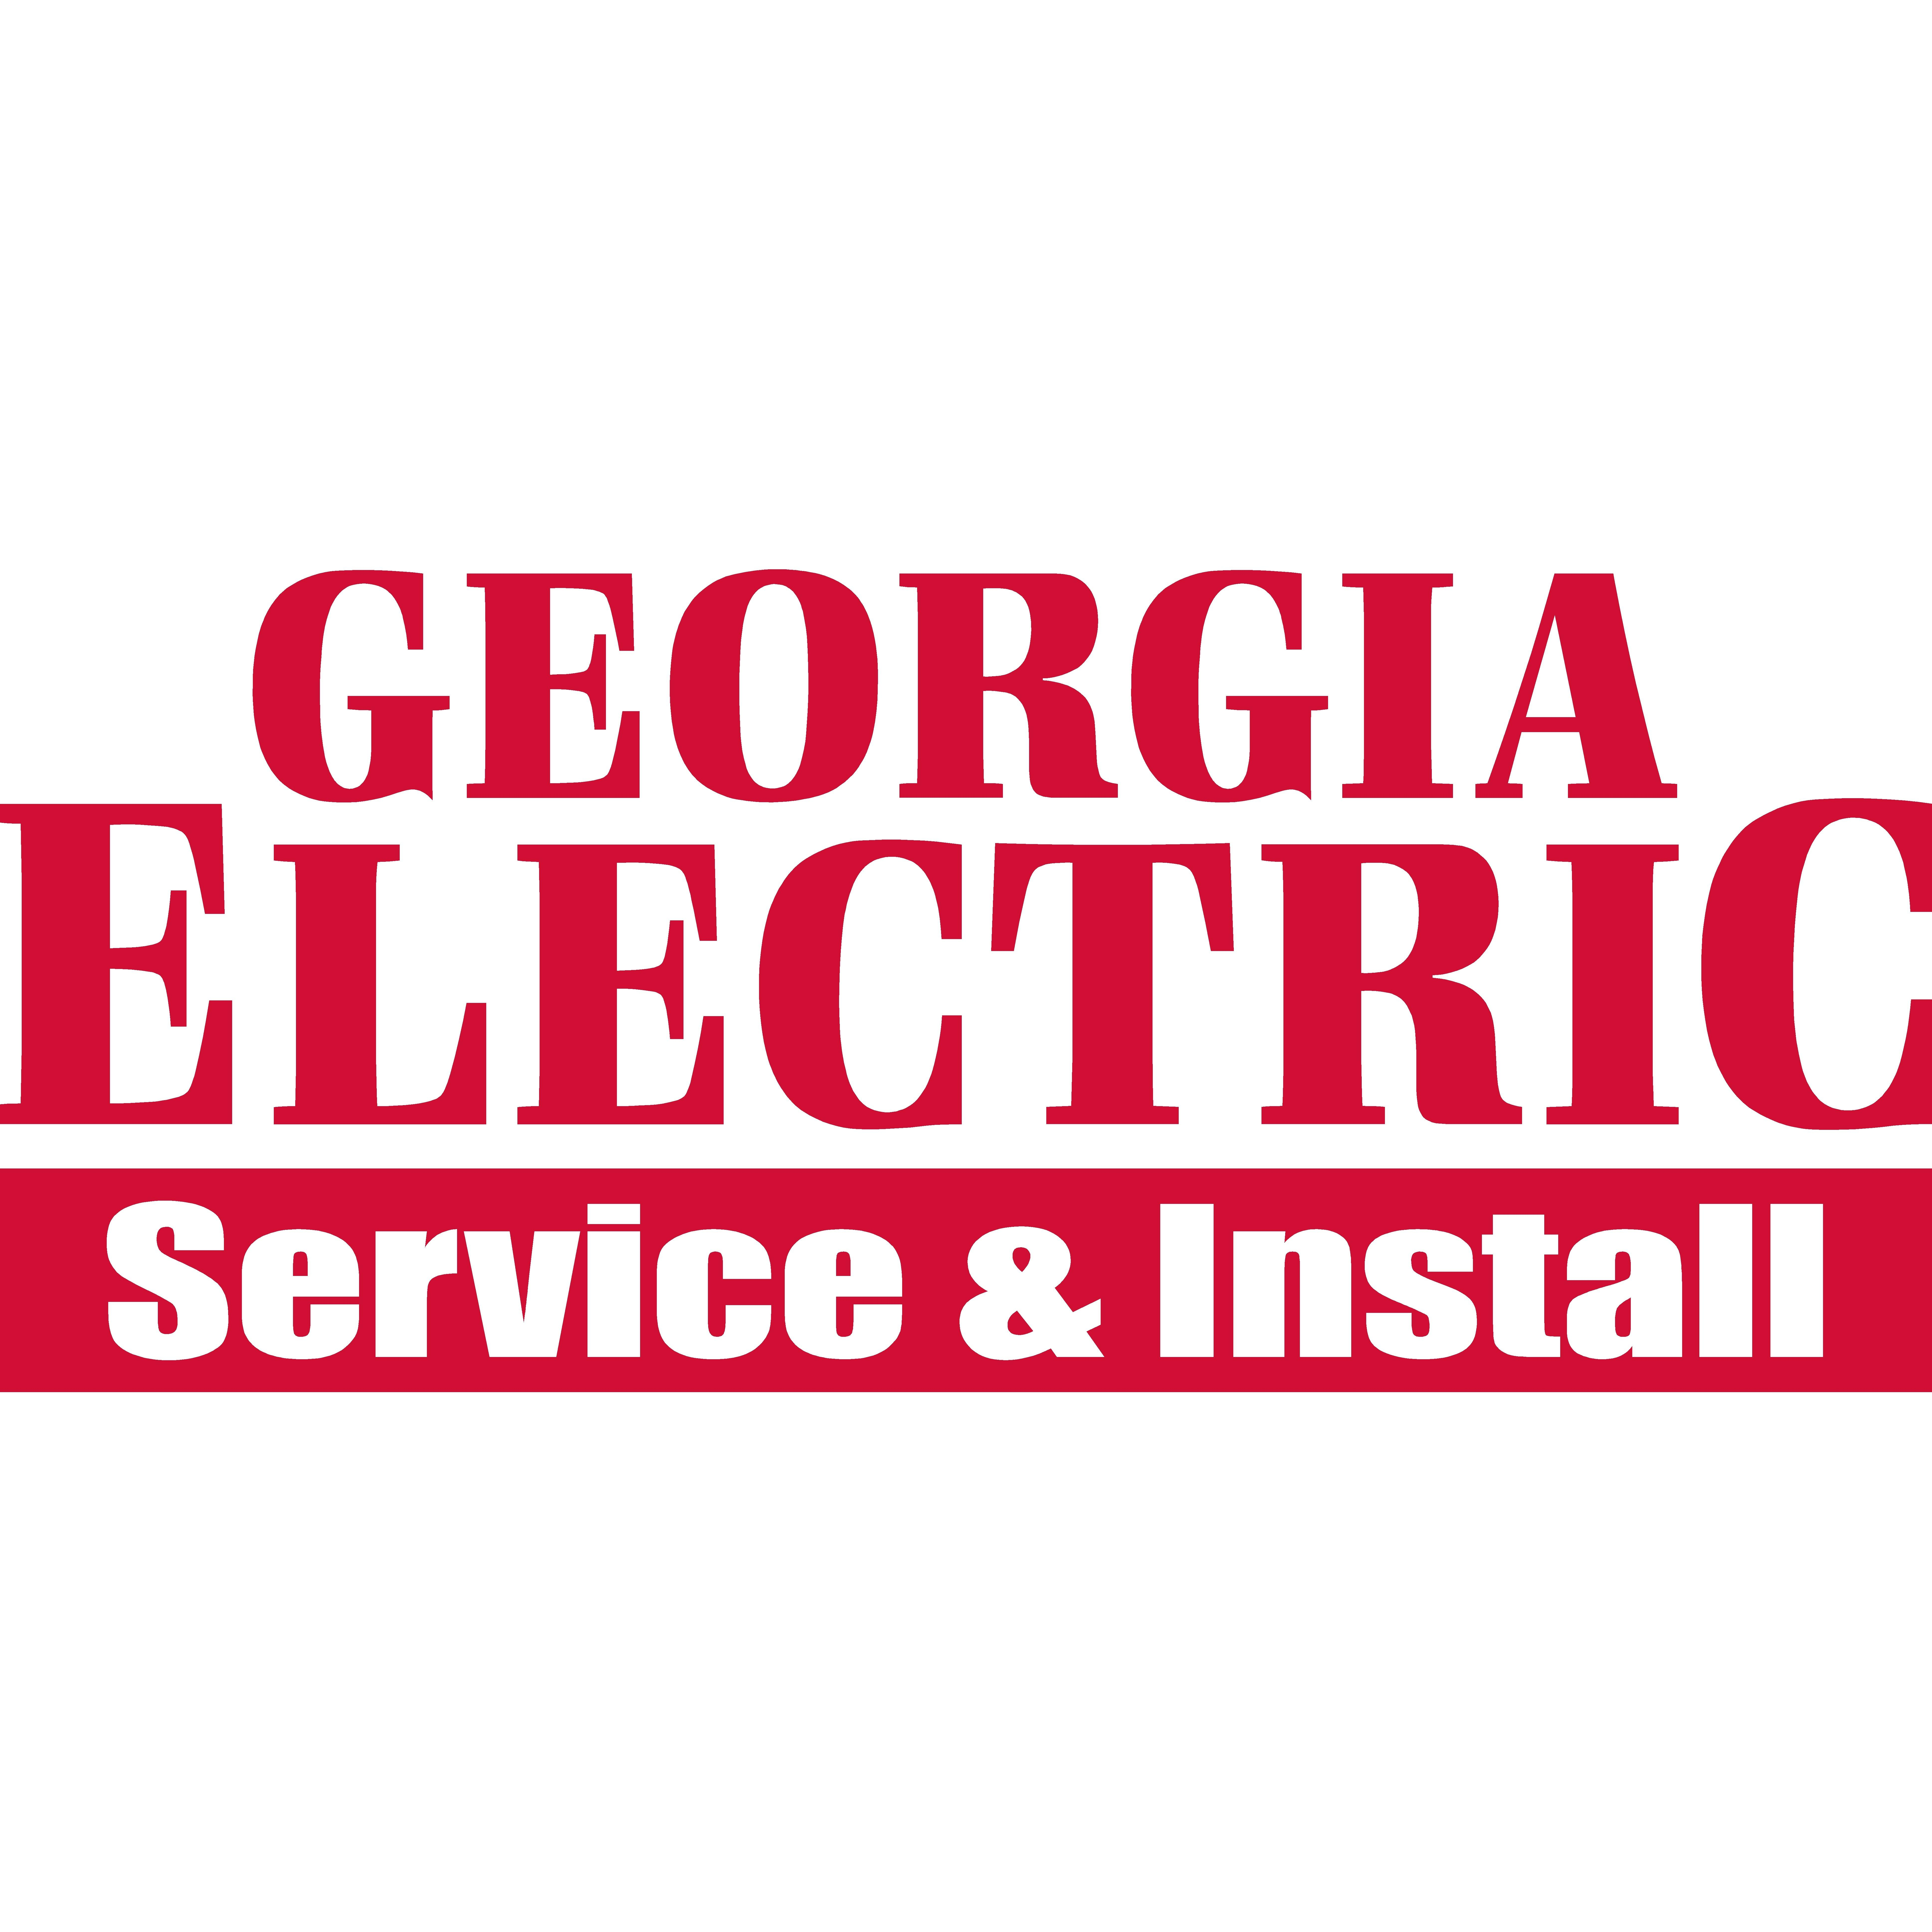 image of Georgia Electric Service & Install